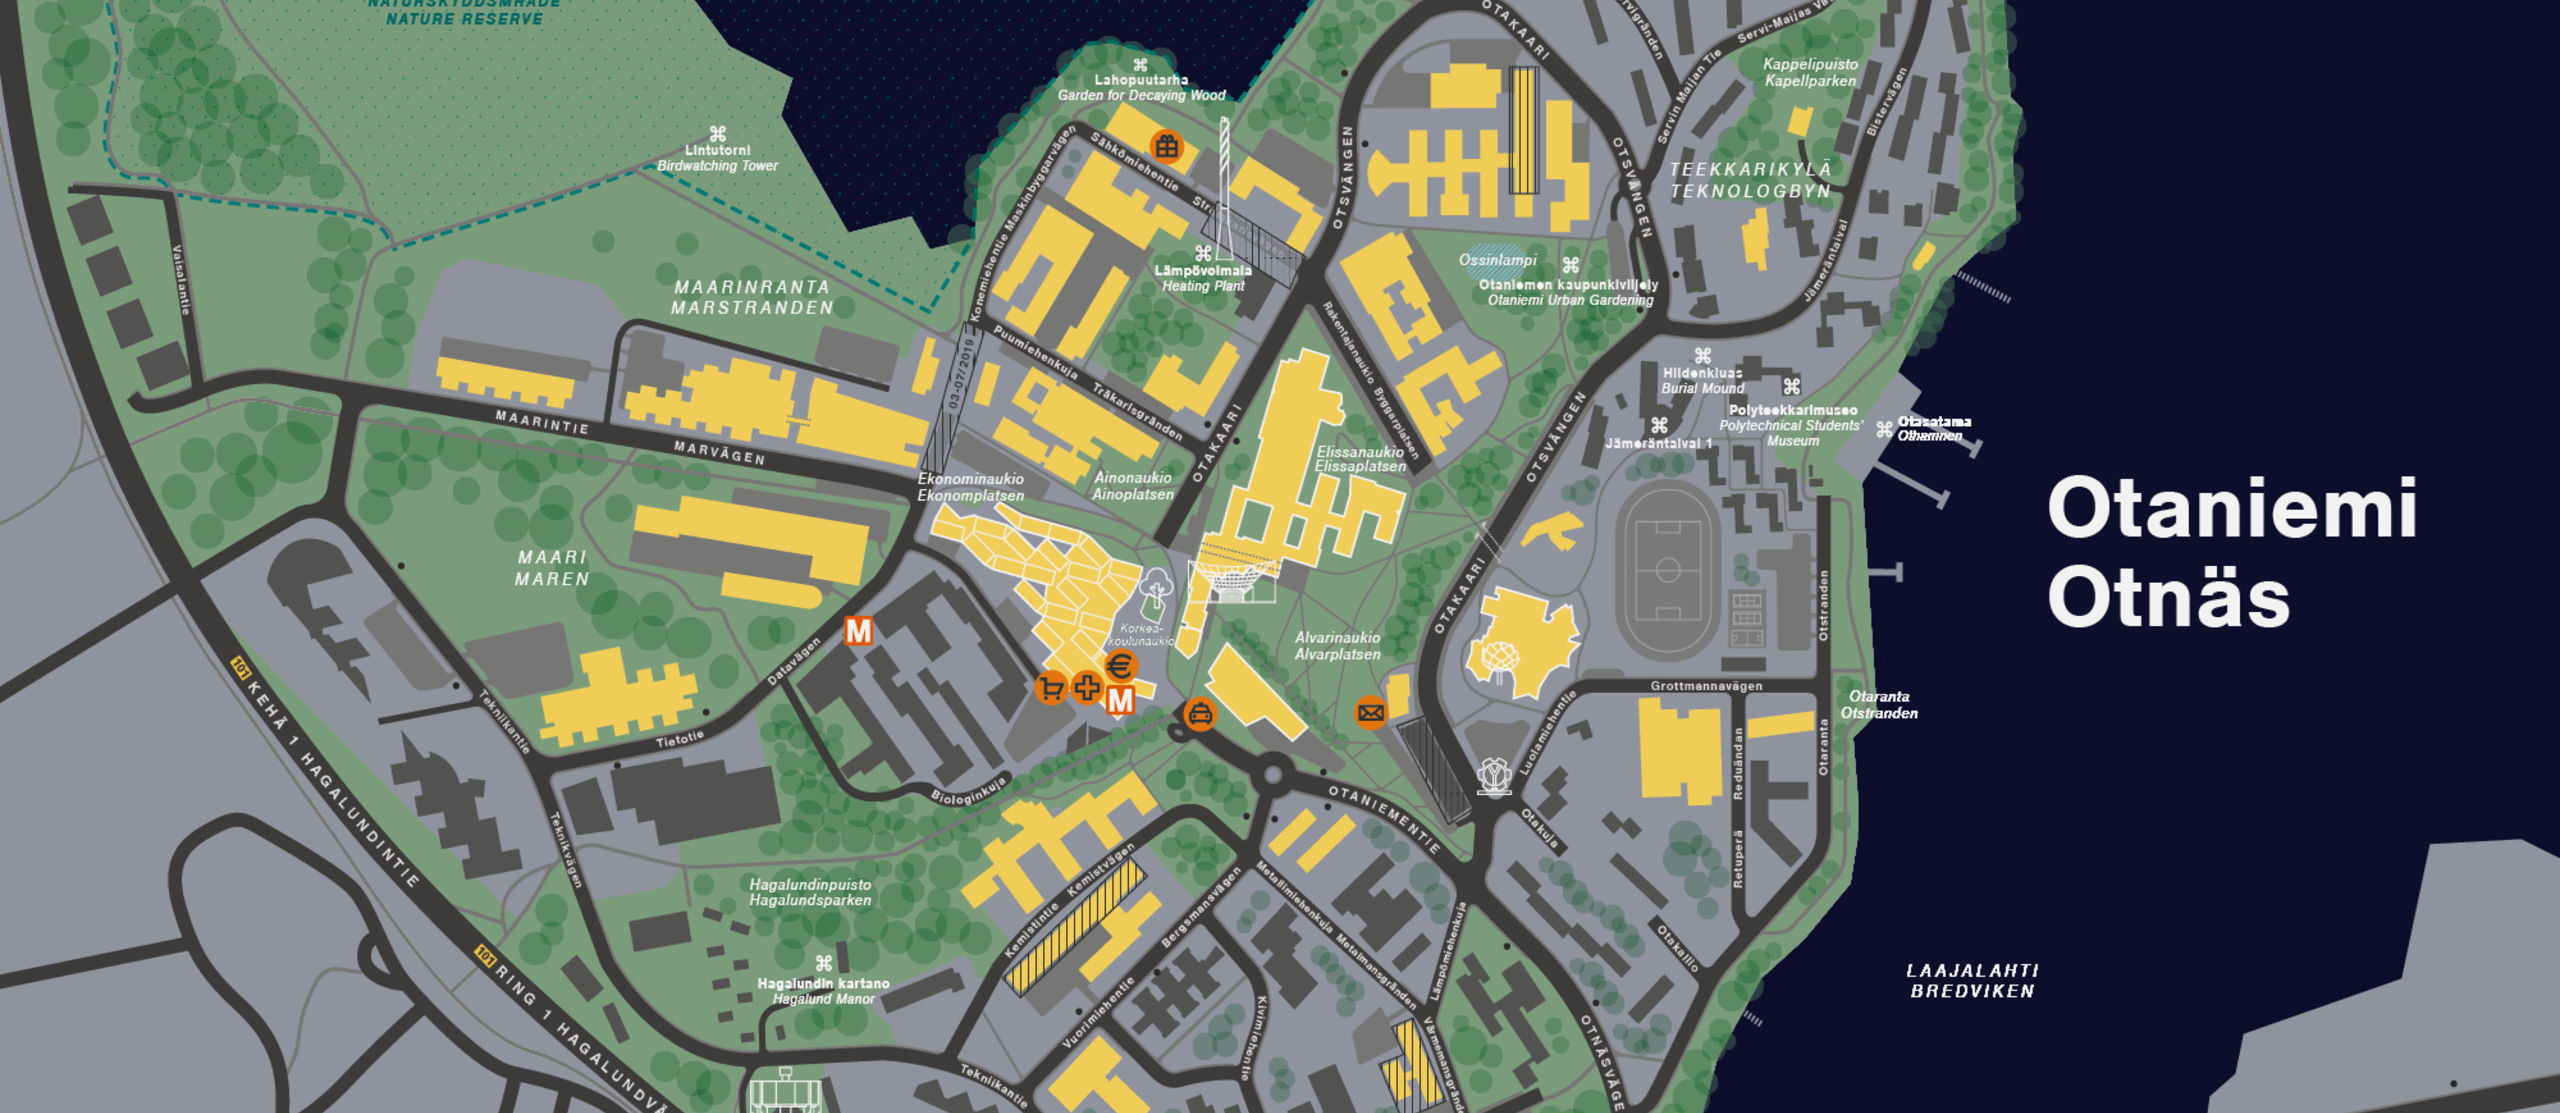 Ku Med Campus Map.Campus Maps And Getting To Otaniemi Aalto University